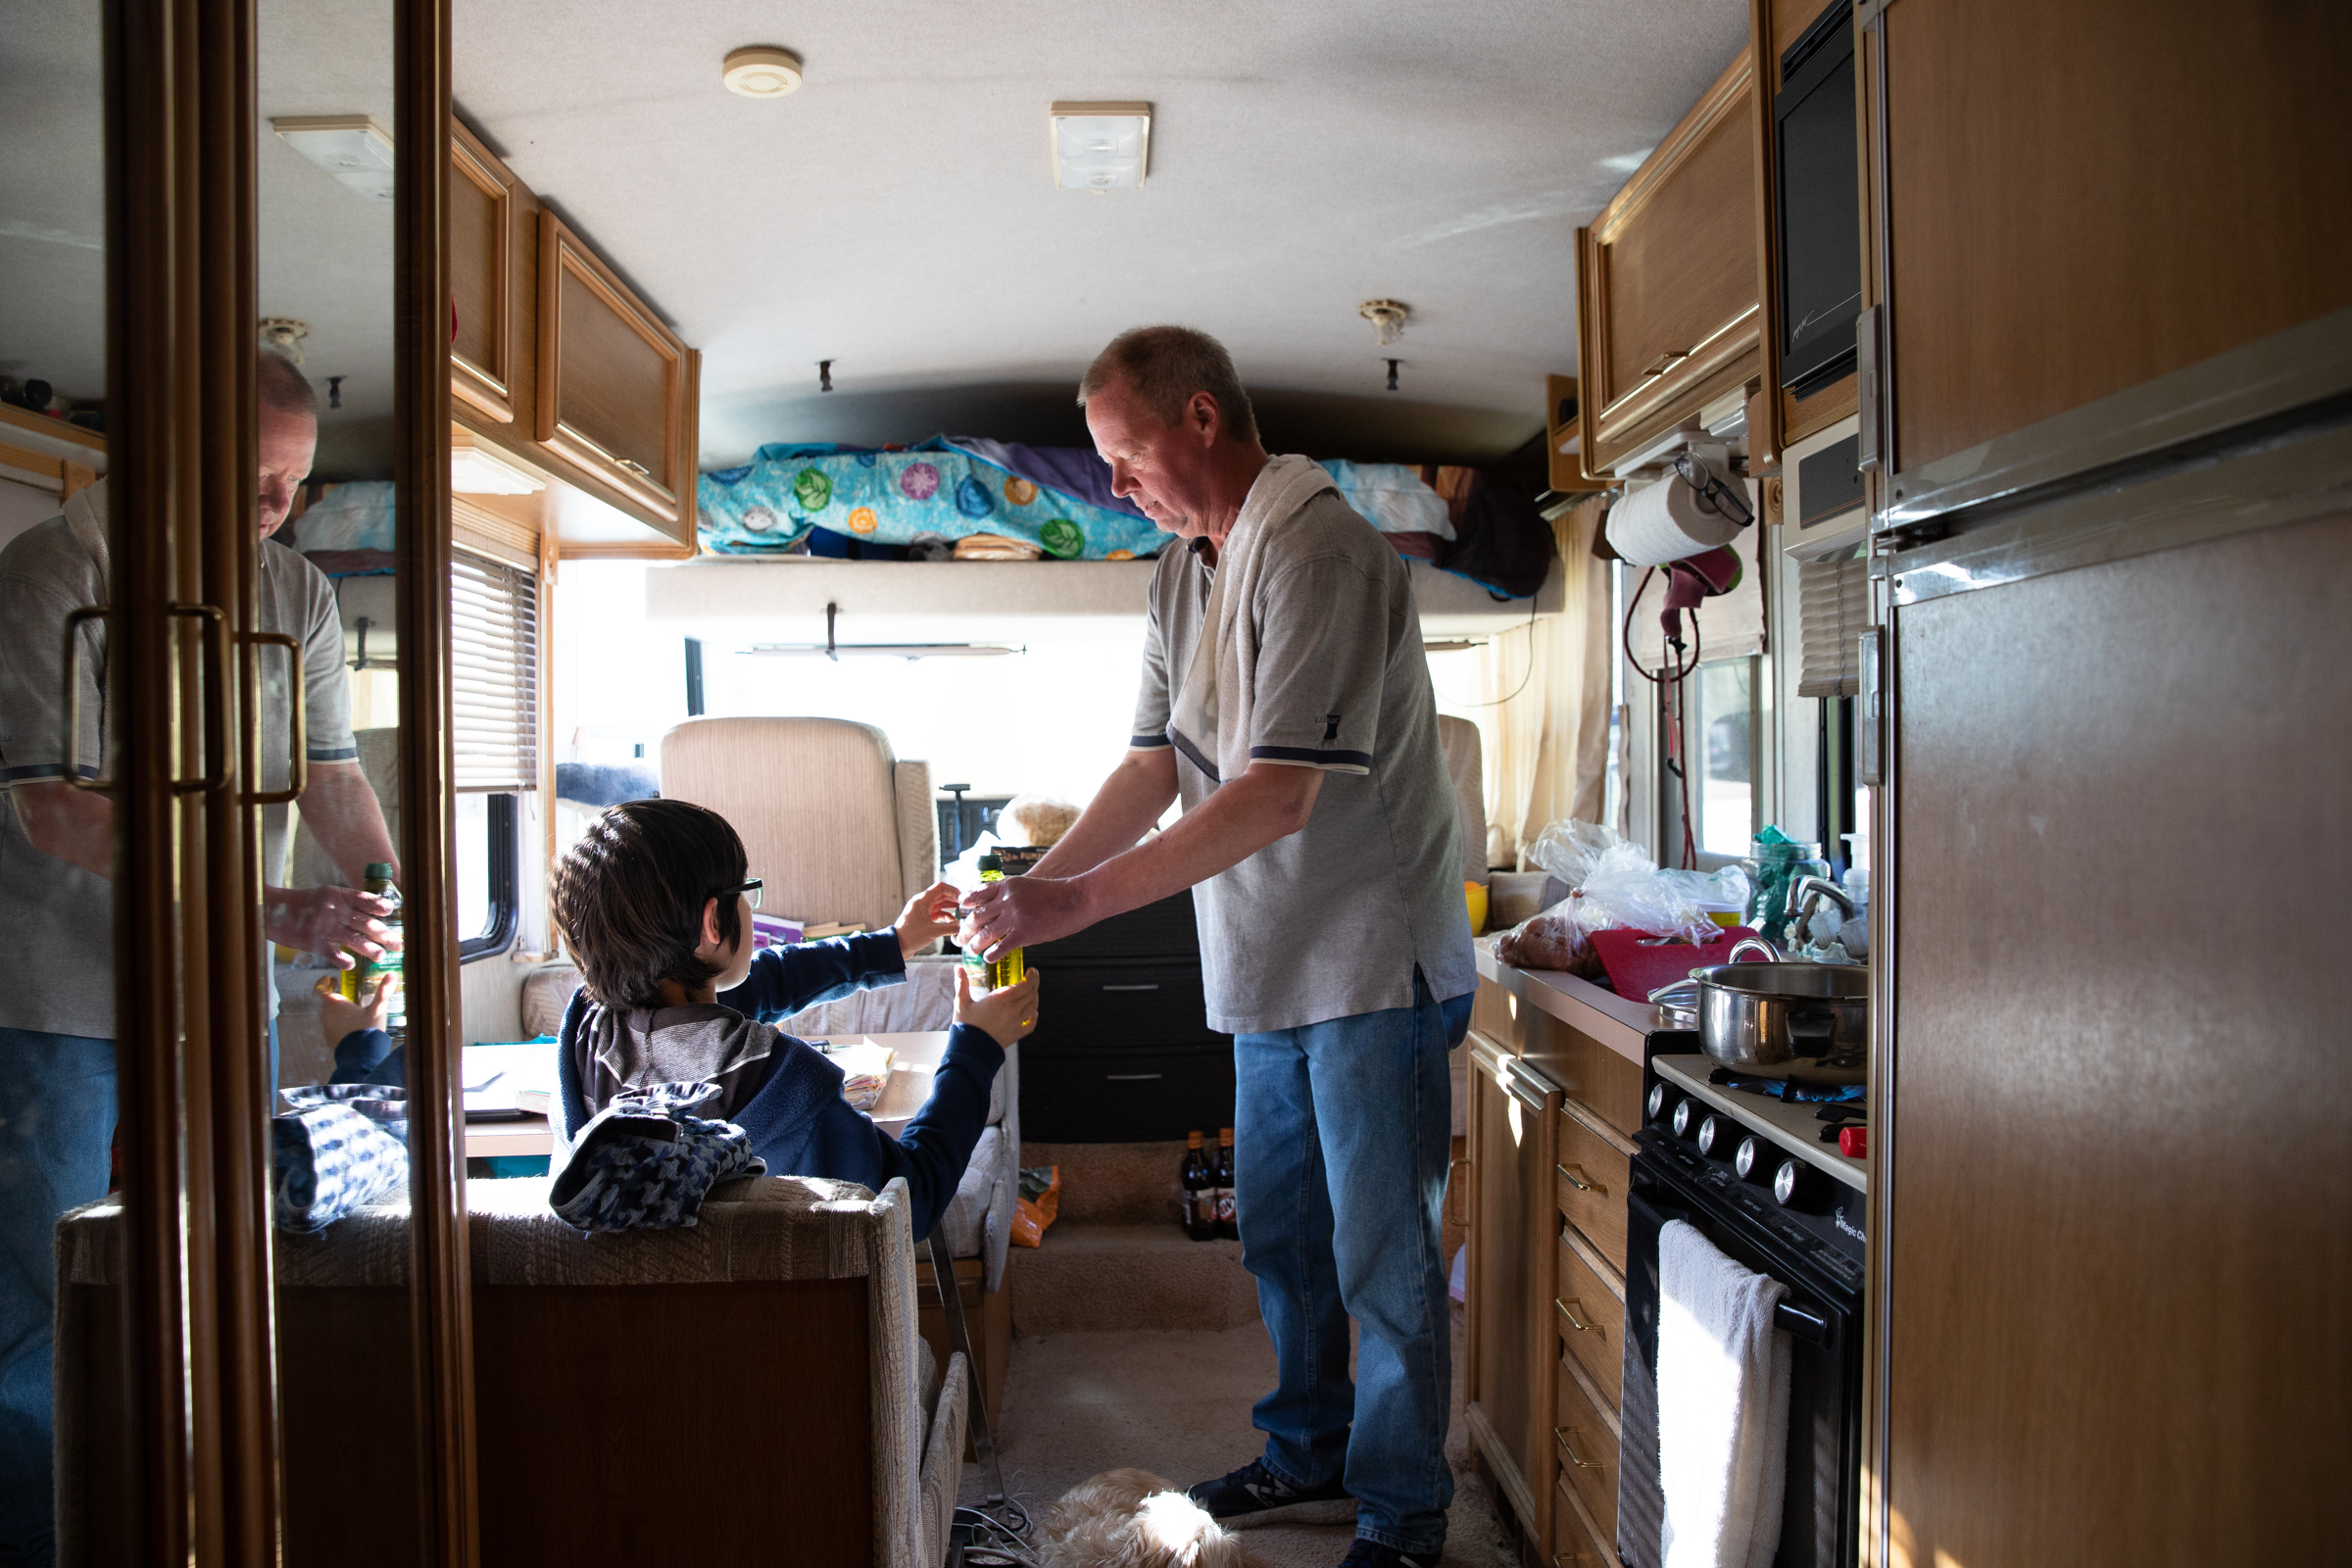 Scott Rodvold takes a bottle of olive oil from his son while preparing dinner in the motorhome they share on March 8. Depleted finances following a medical emergency made it impossible to stay in his Mountain View apartment, he said.